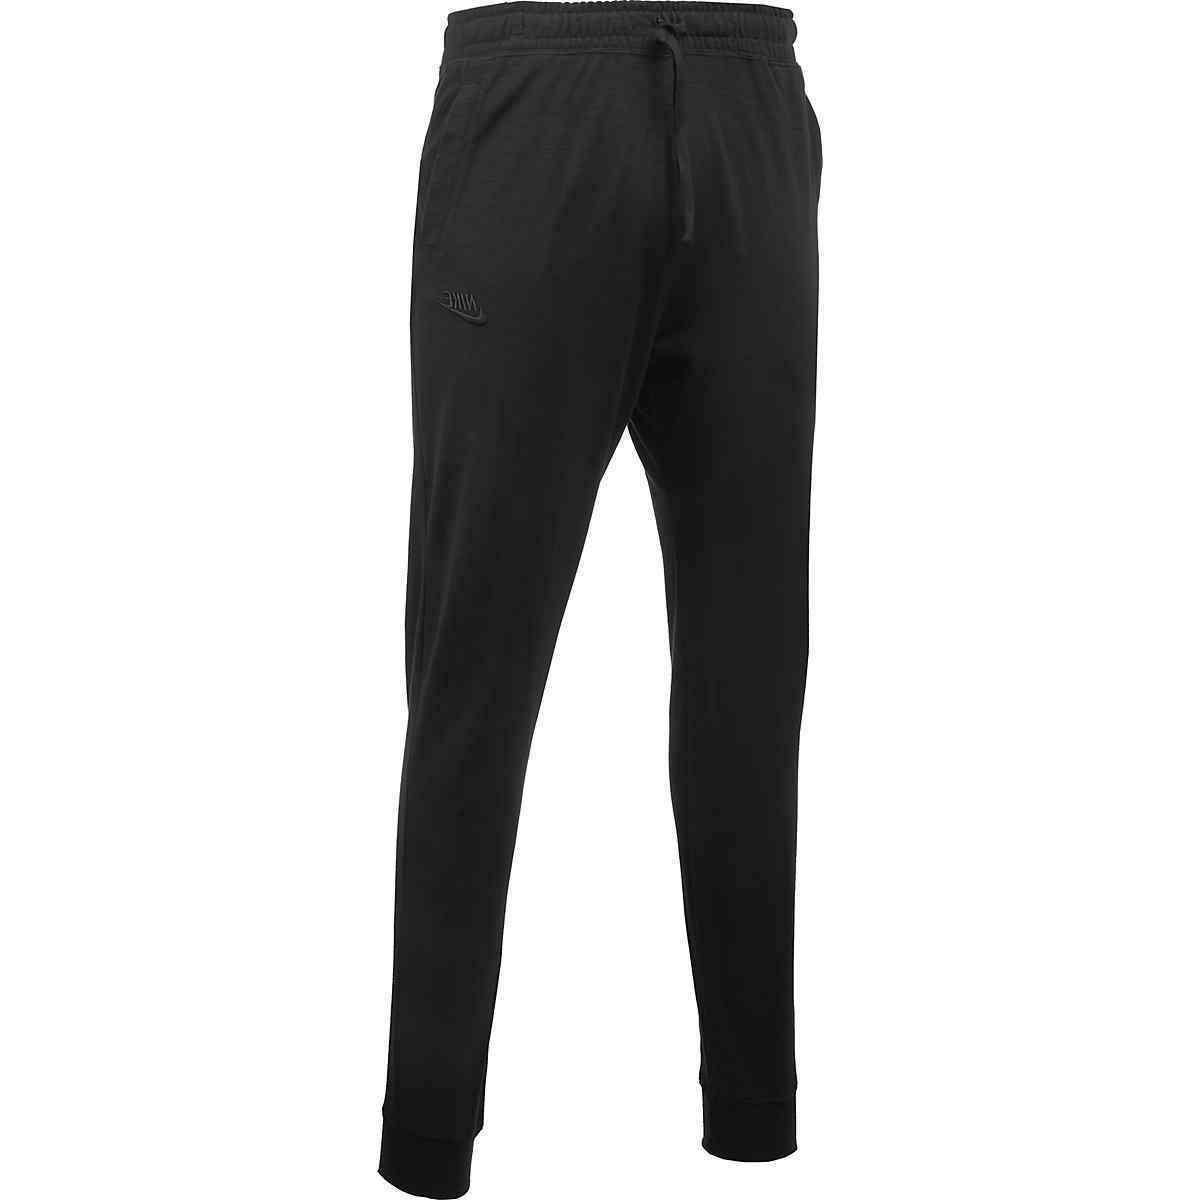 sportswear standard fit joggers pants tapered cuffed